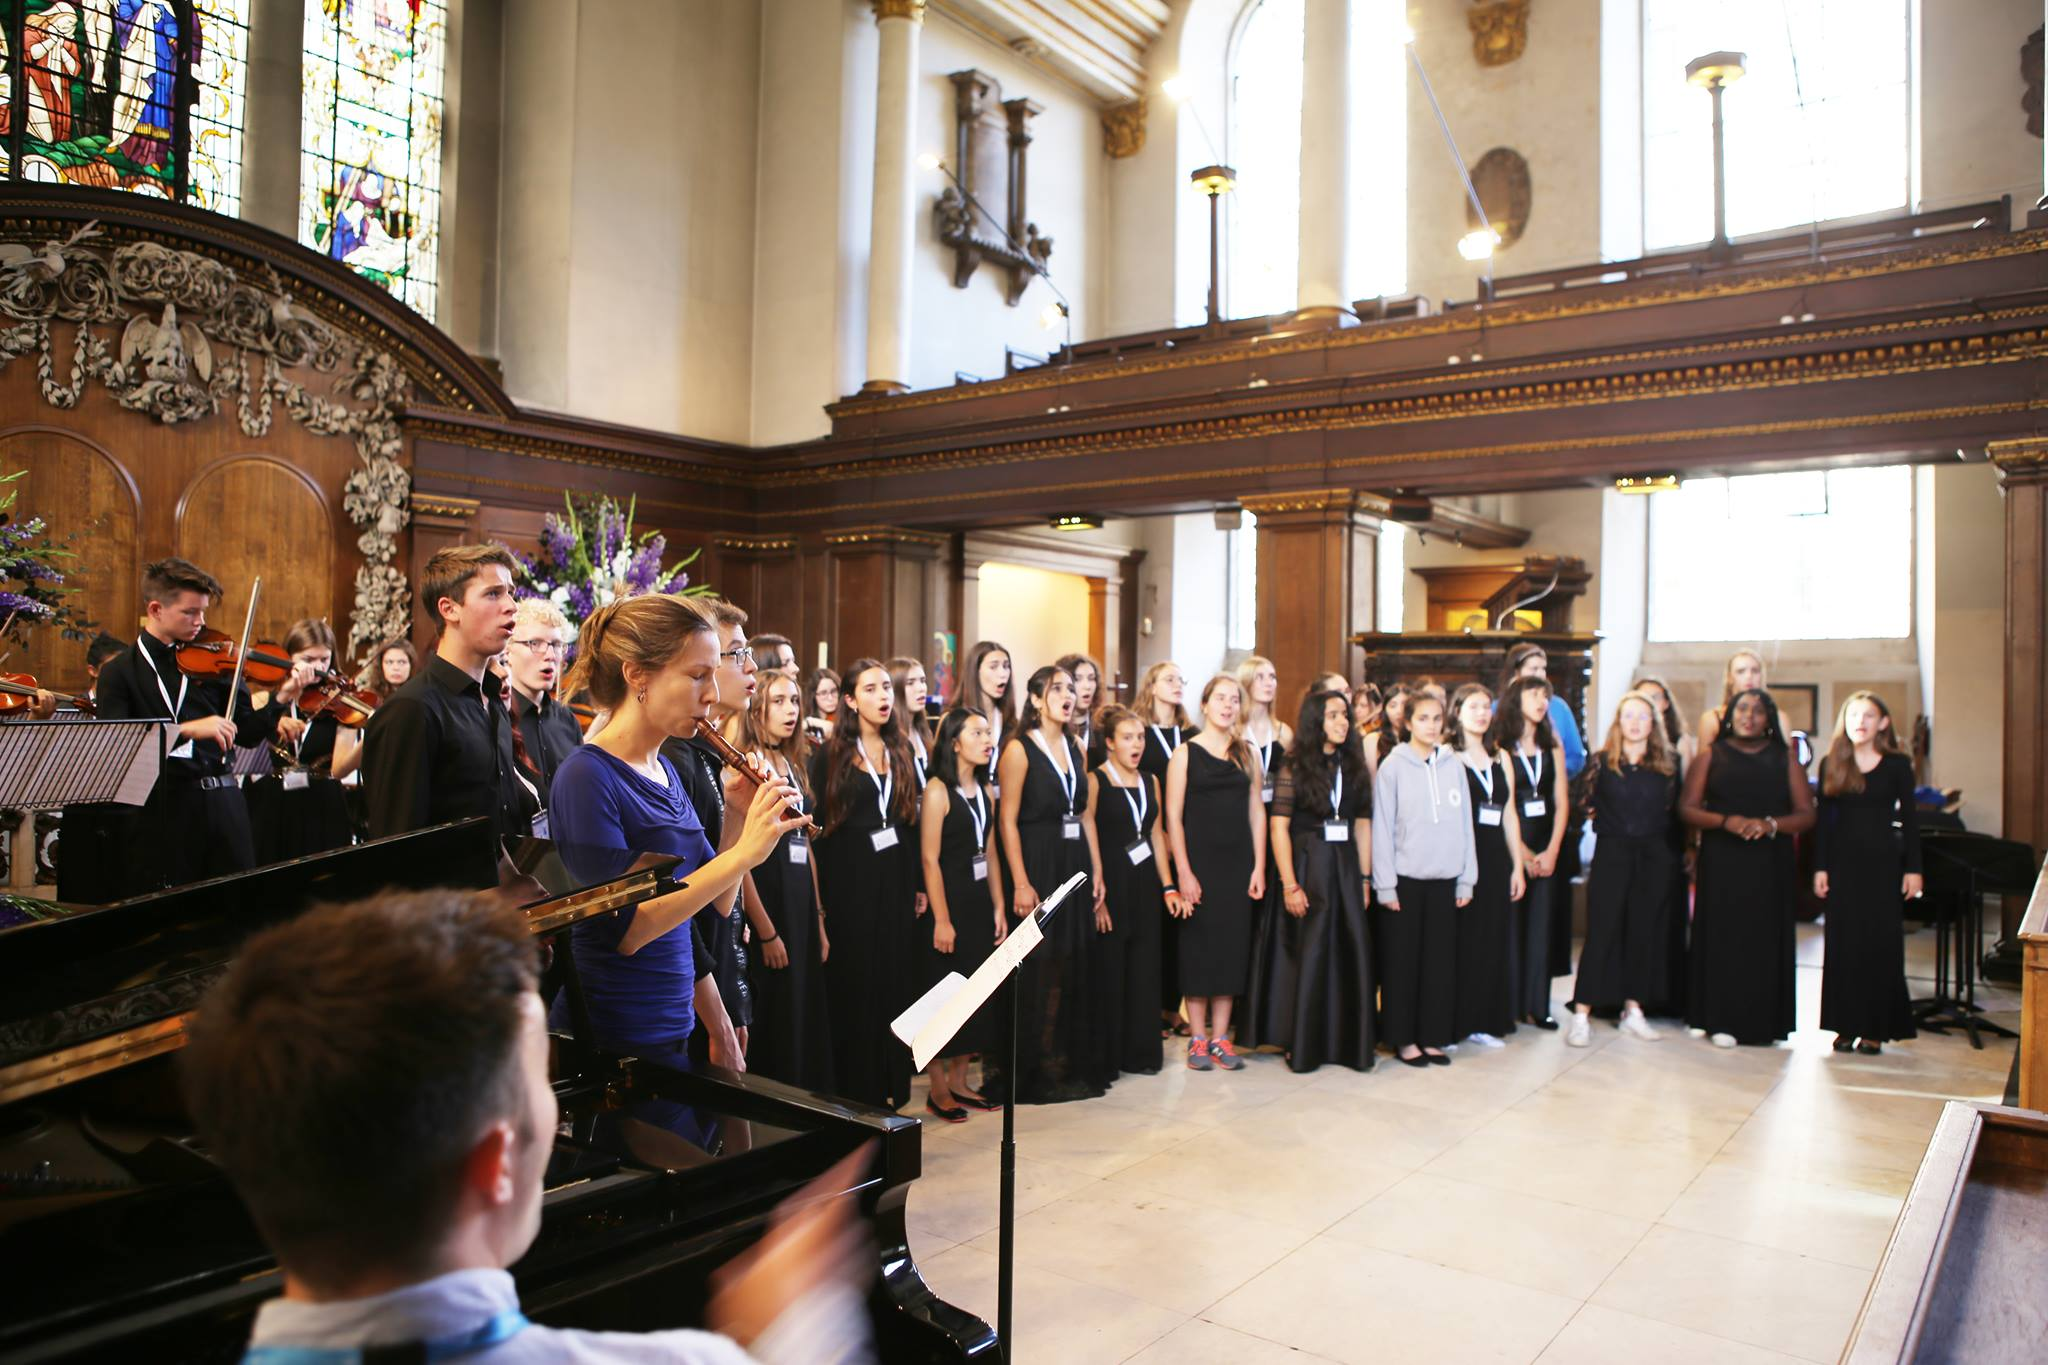 Ingenium Academy Concert at St James's Church, Picadilly